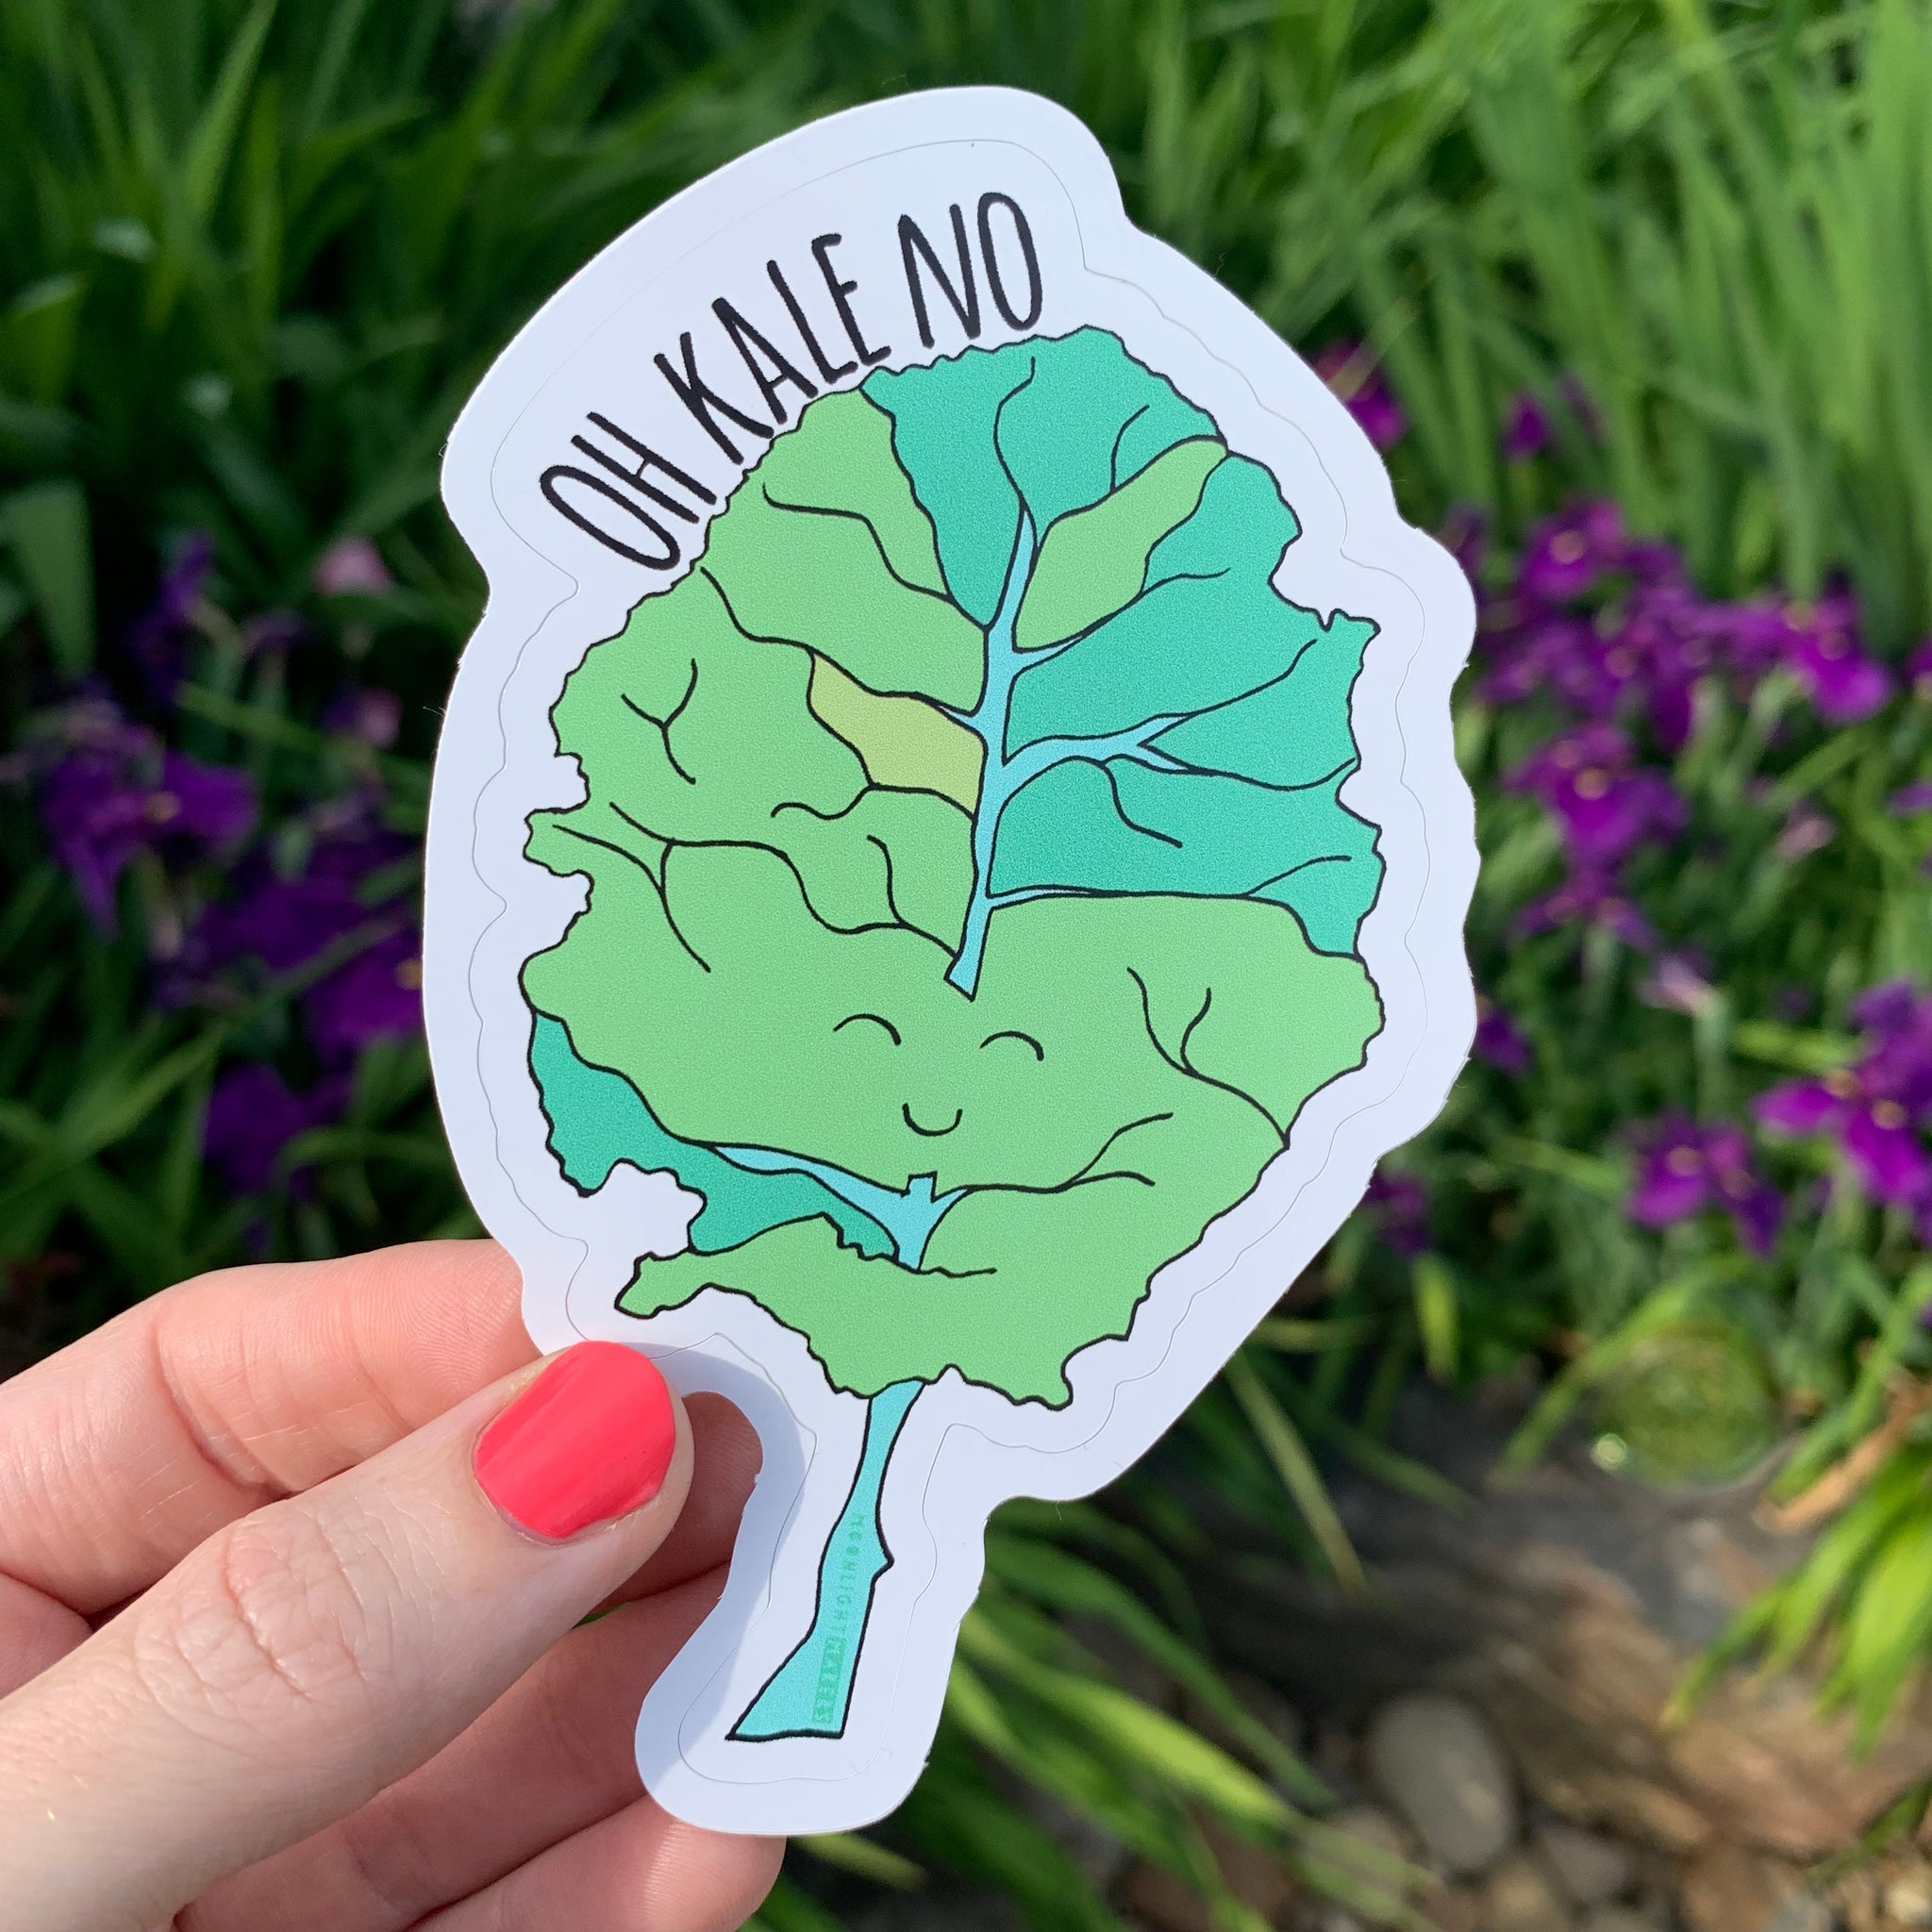 Oh Kale No - Die Cut Sticker - MoonlightMakers